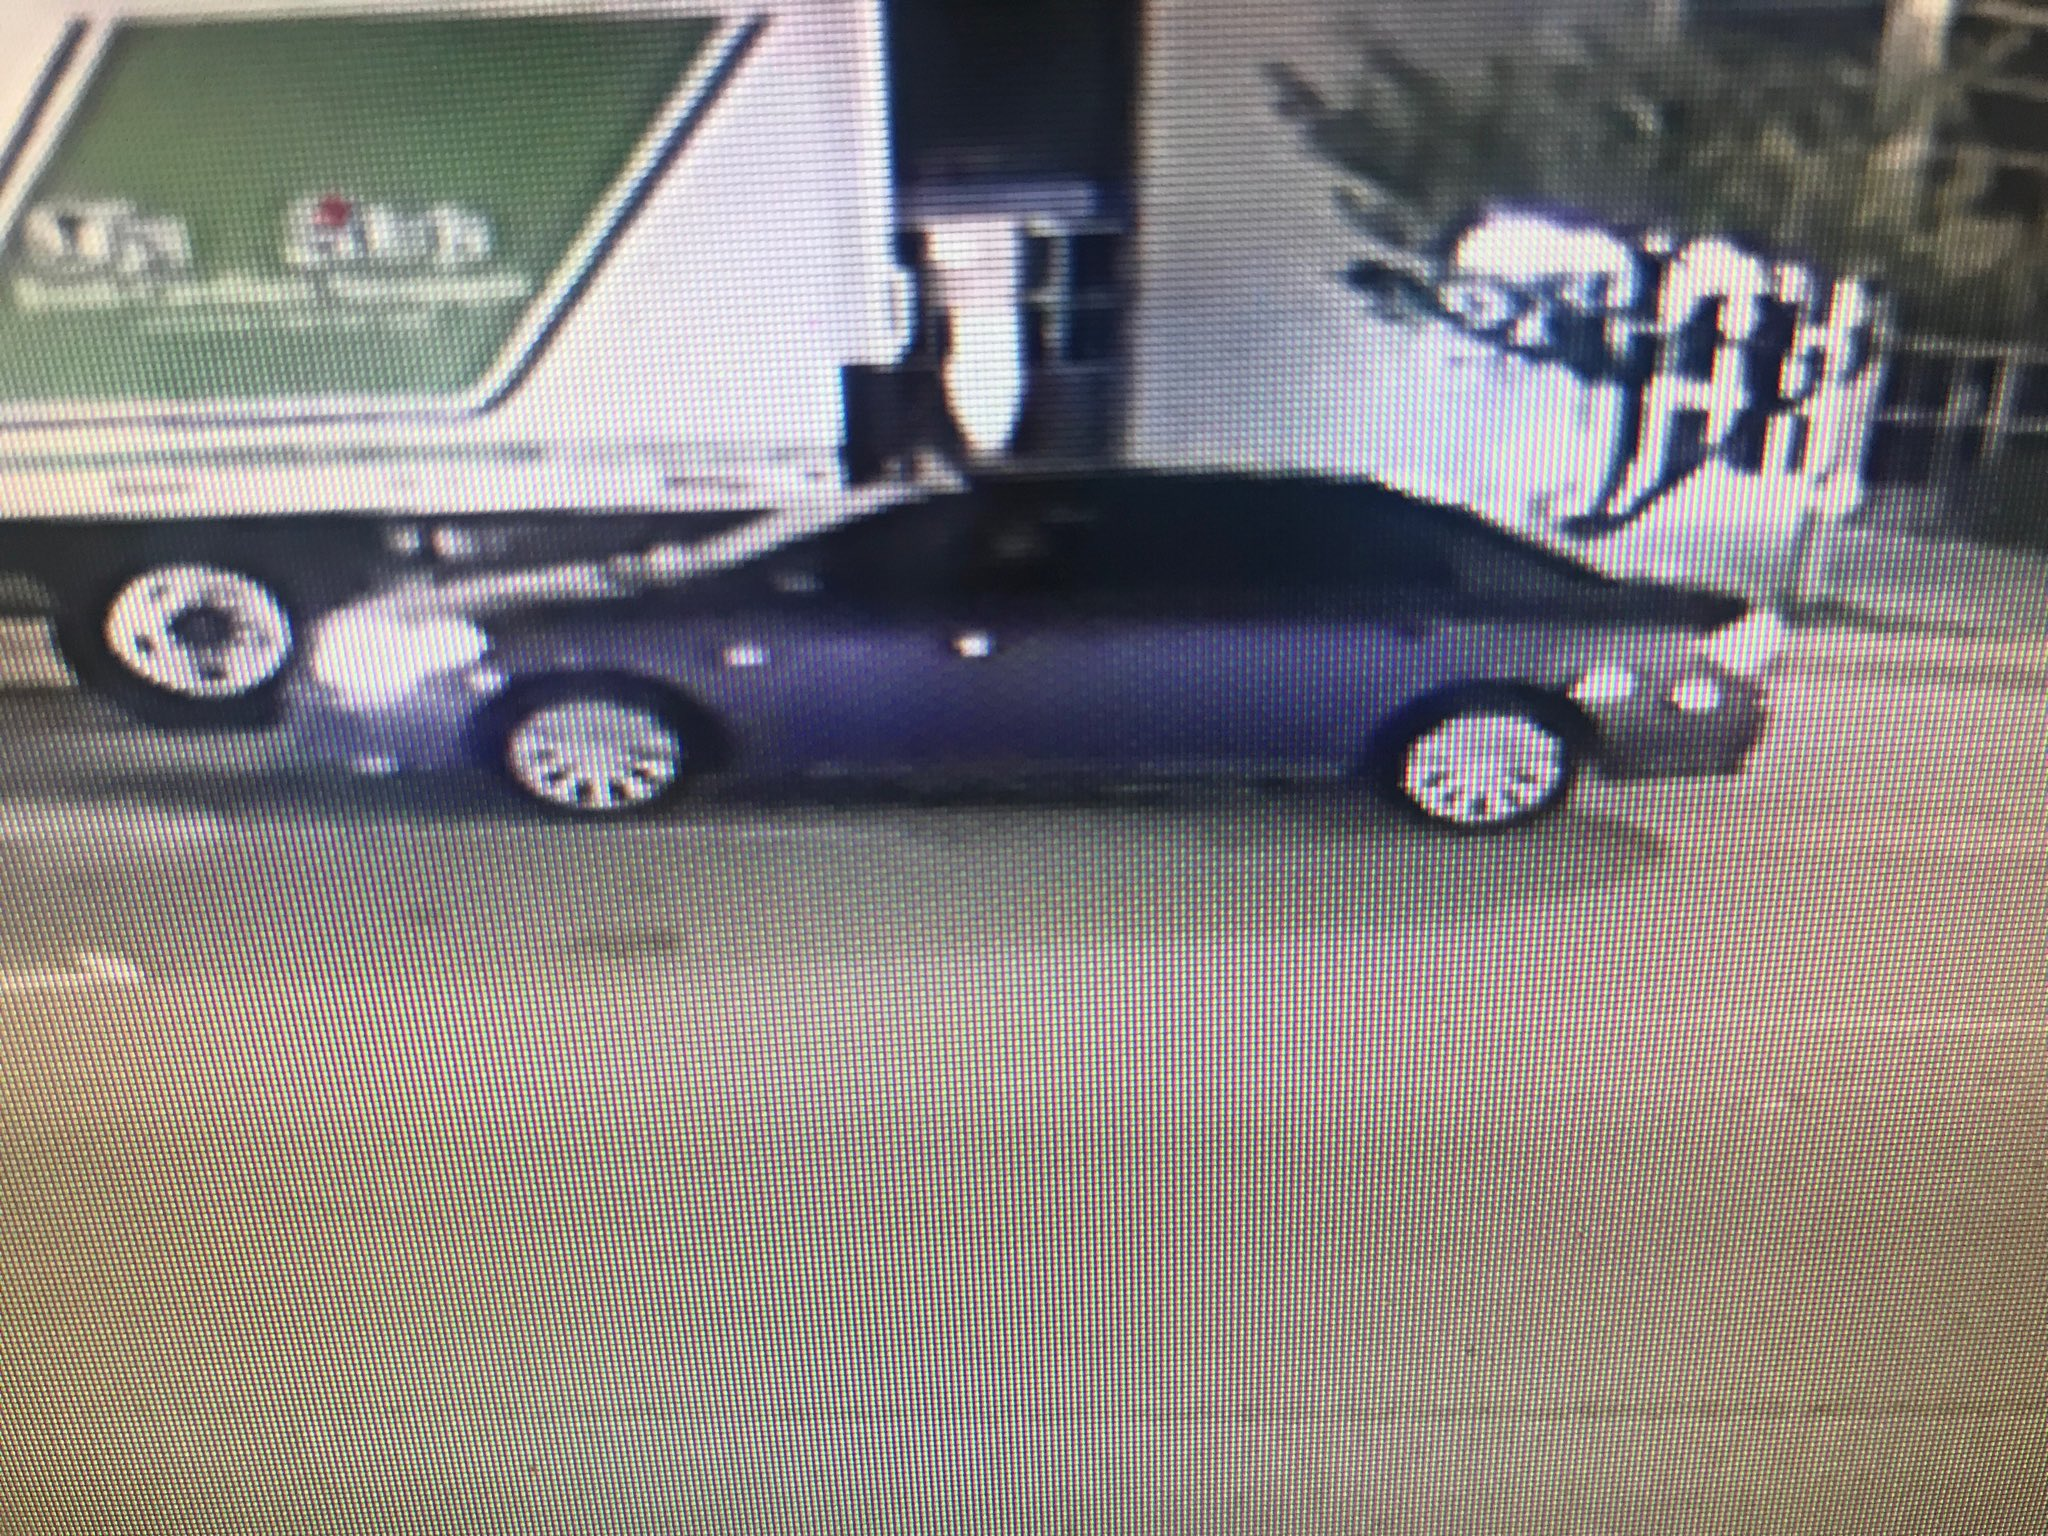 Columbia Police Searching For Car Involved in Hit and Run ABC Columbia